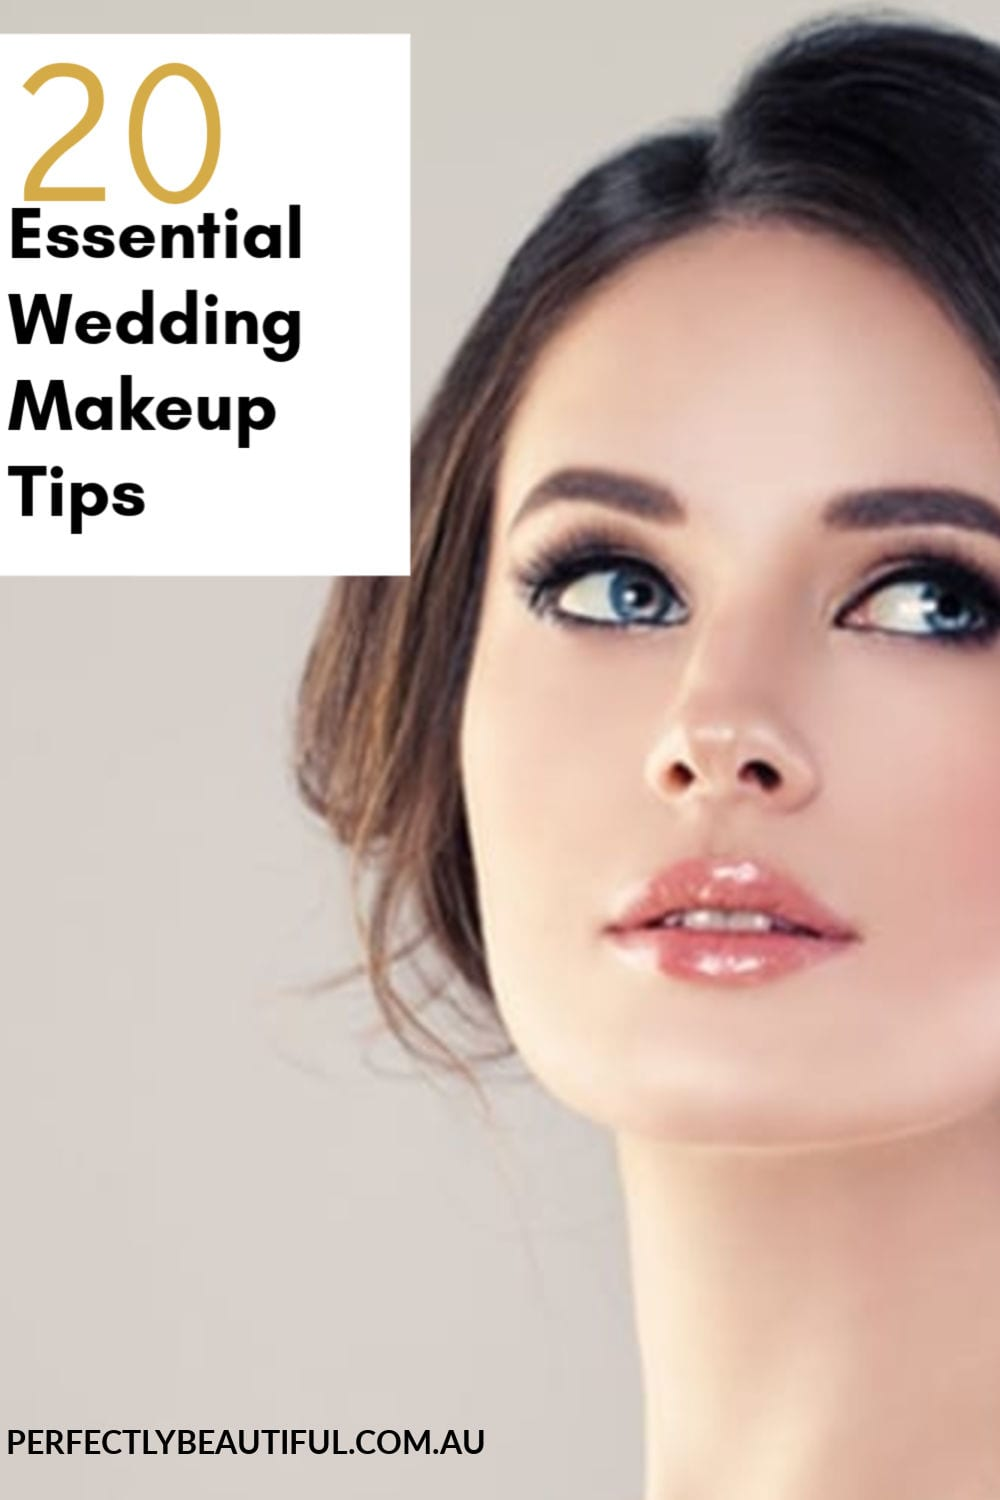 20 essential wedding makeup tips - perfectly beautiful